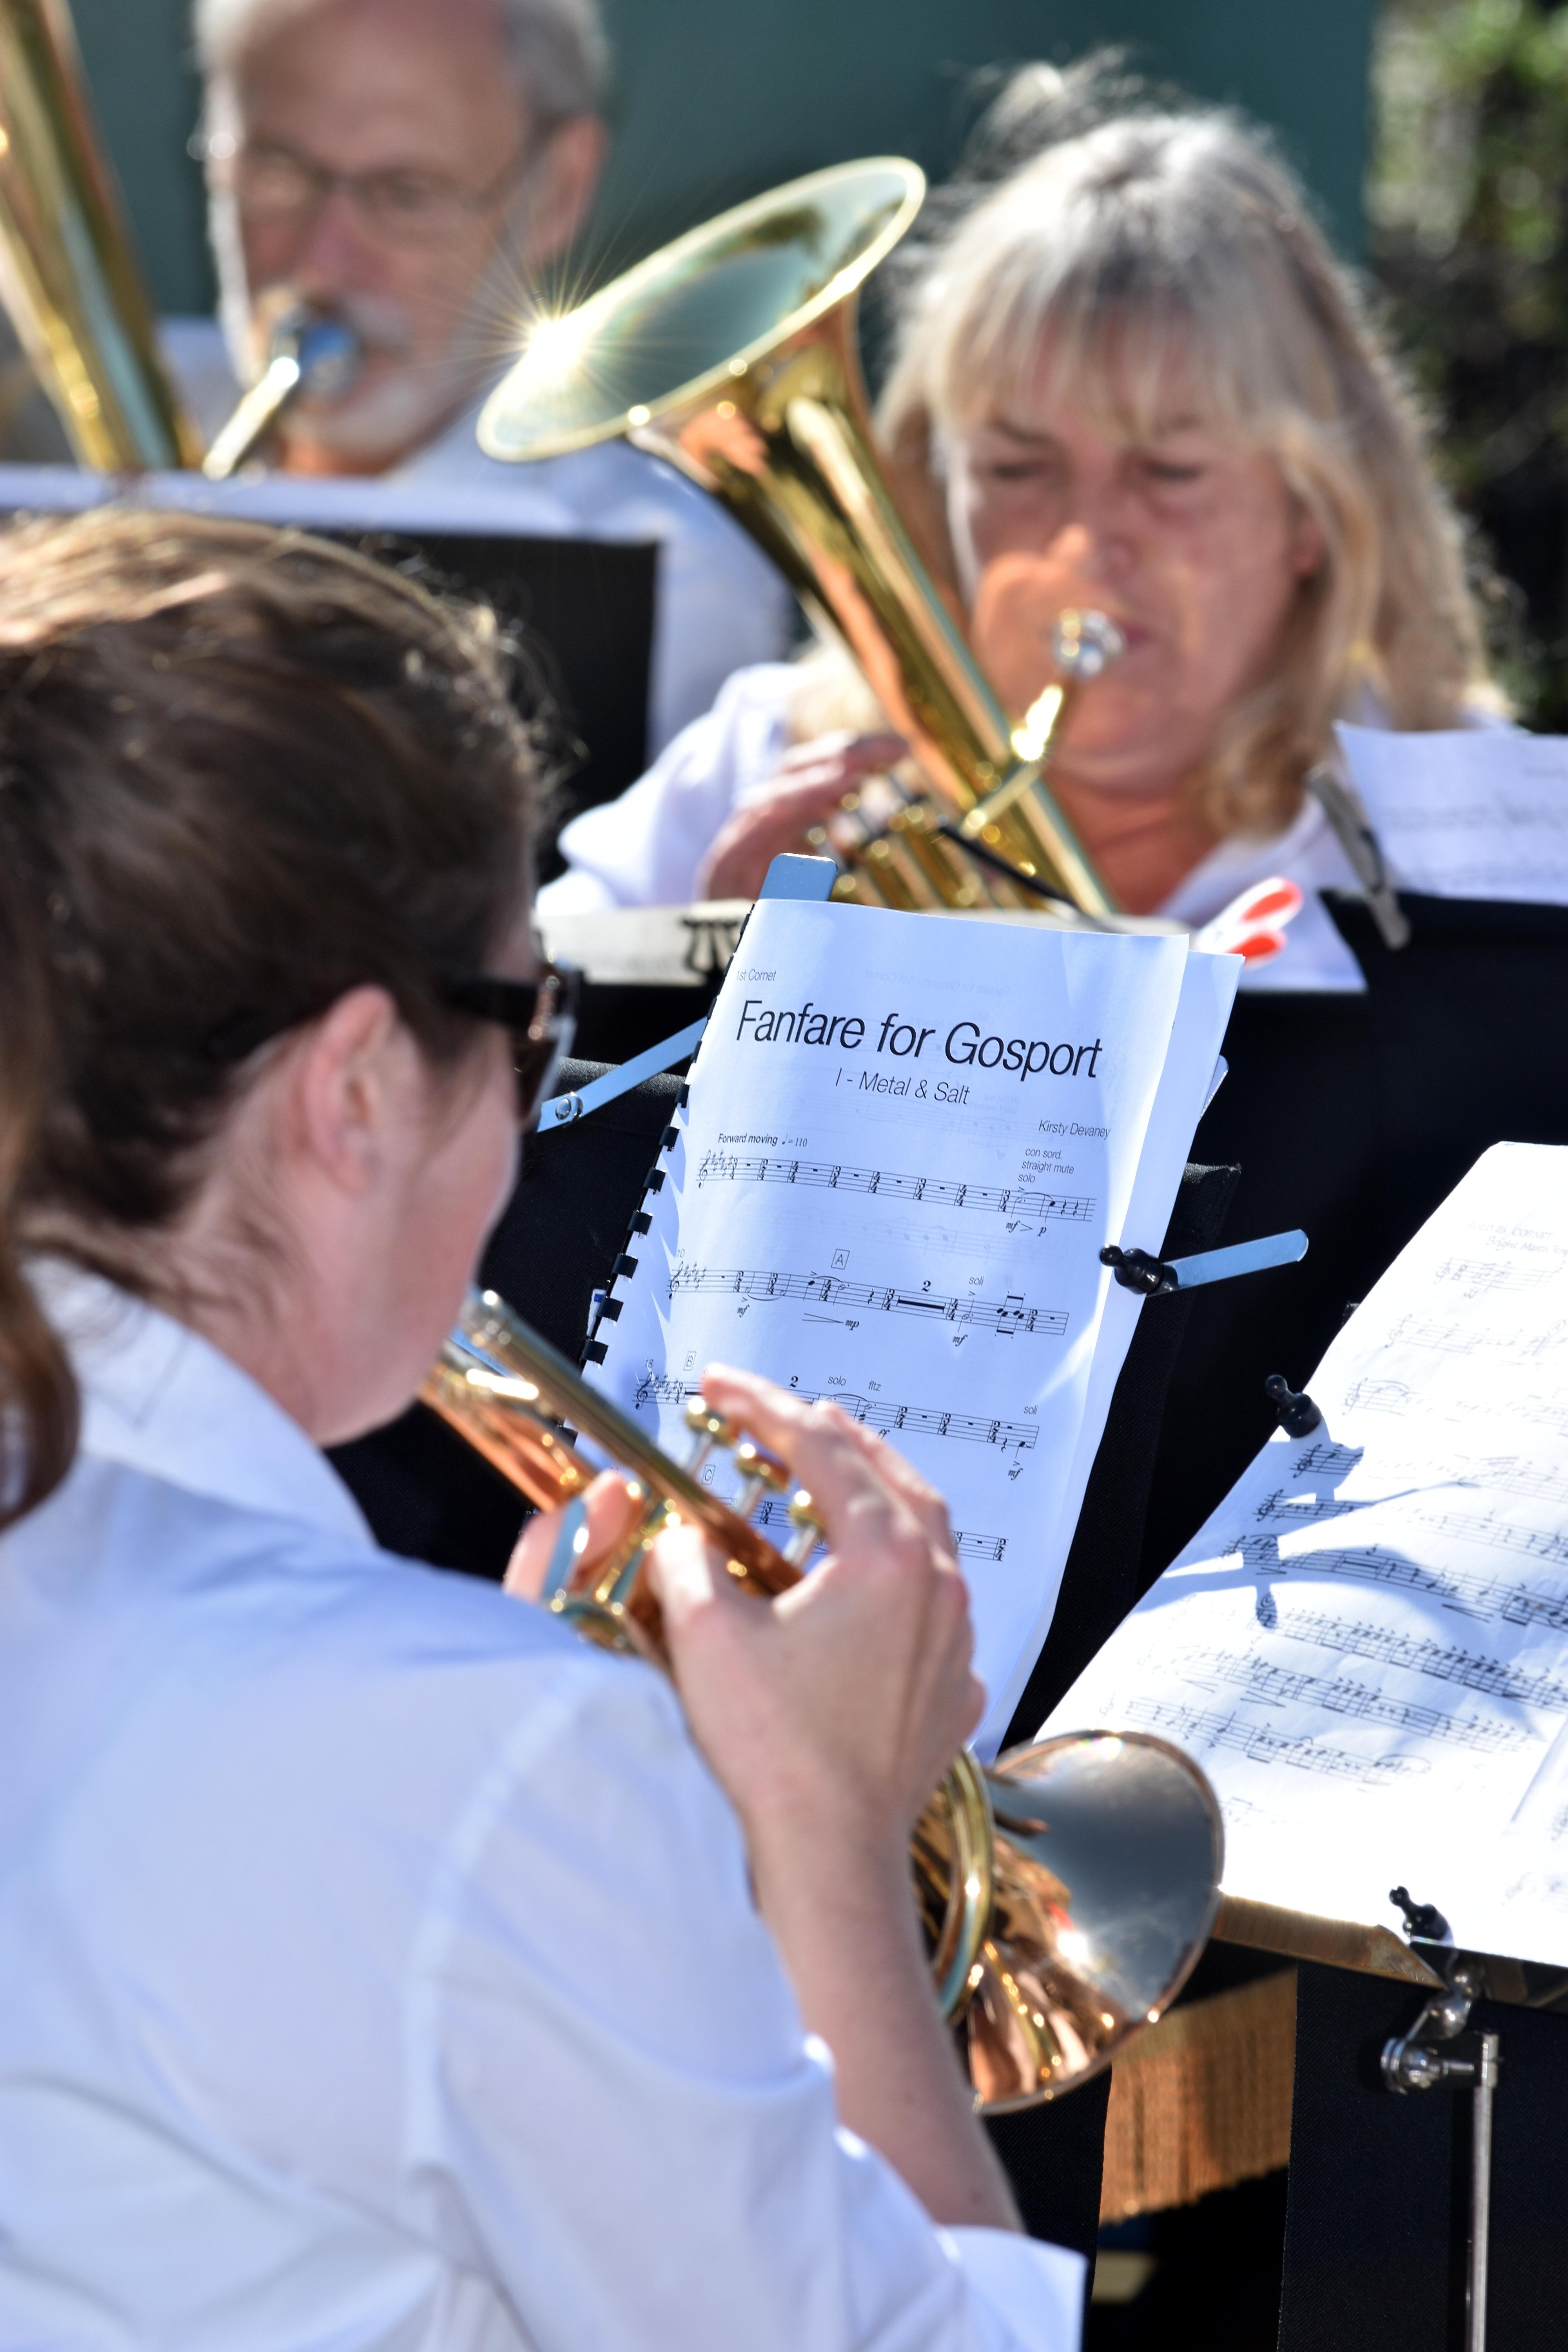 Fanfare for Gosport